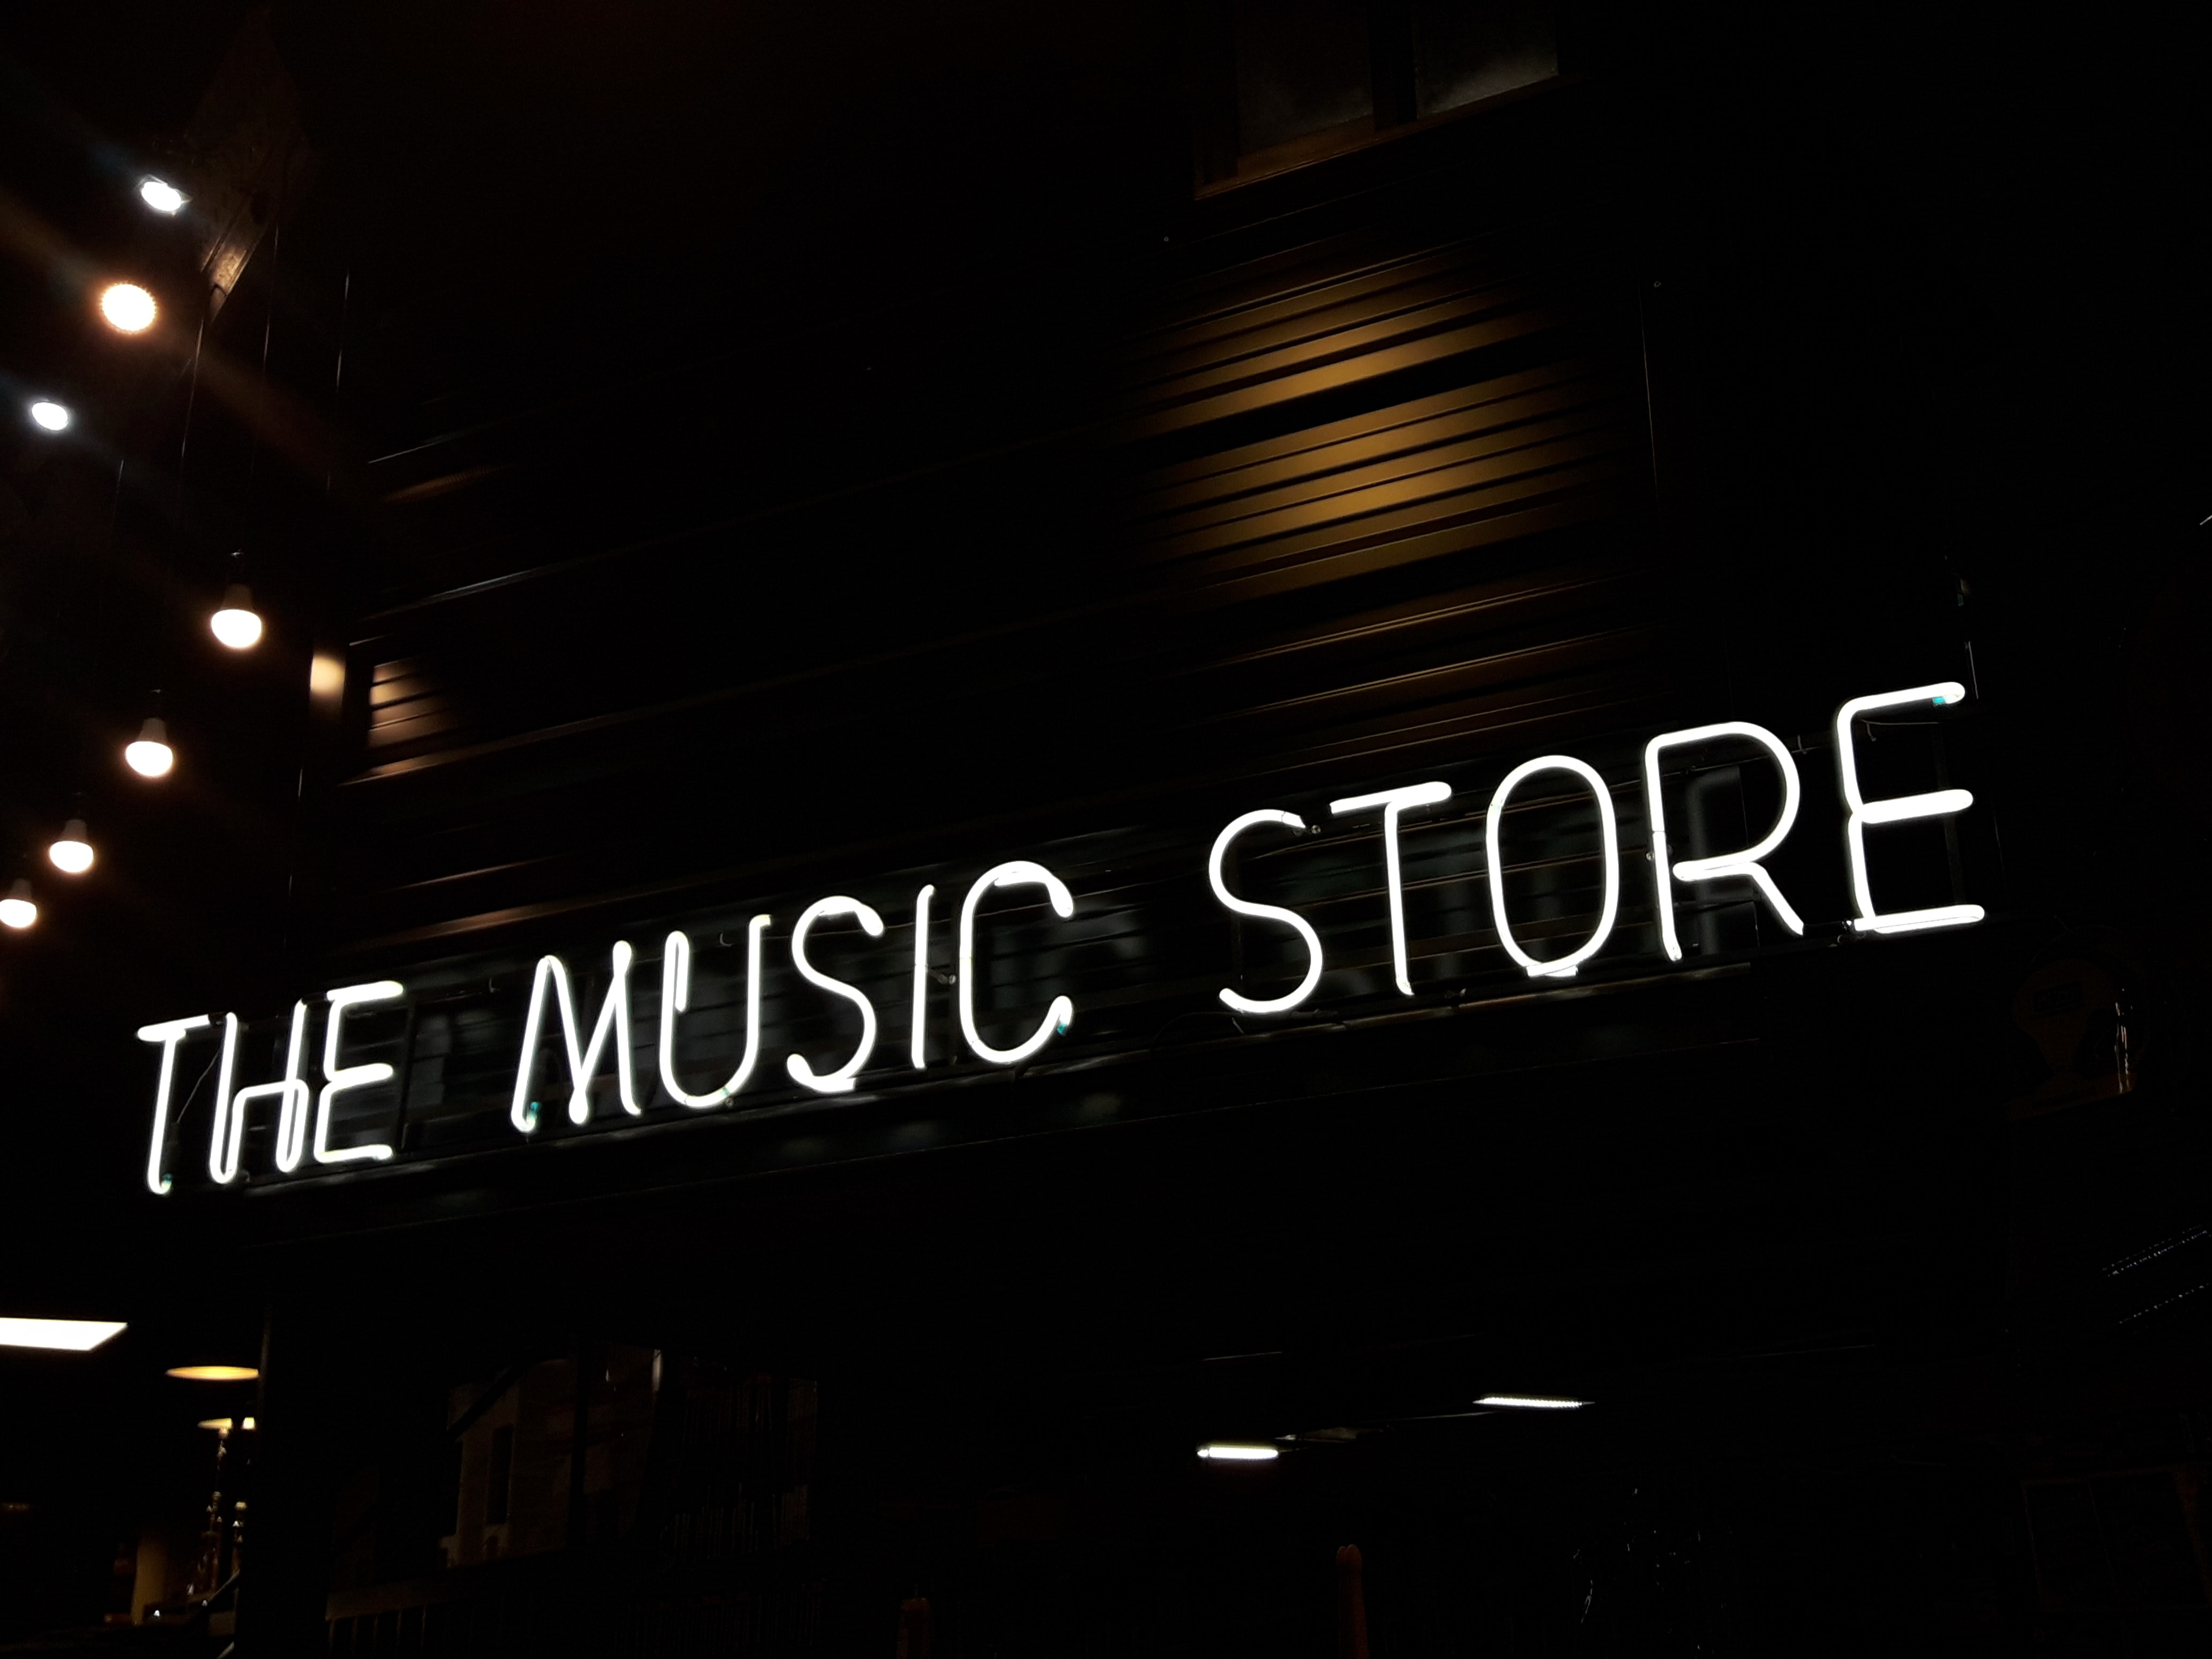 The Music Store facade